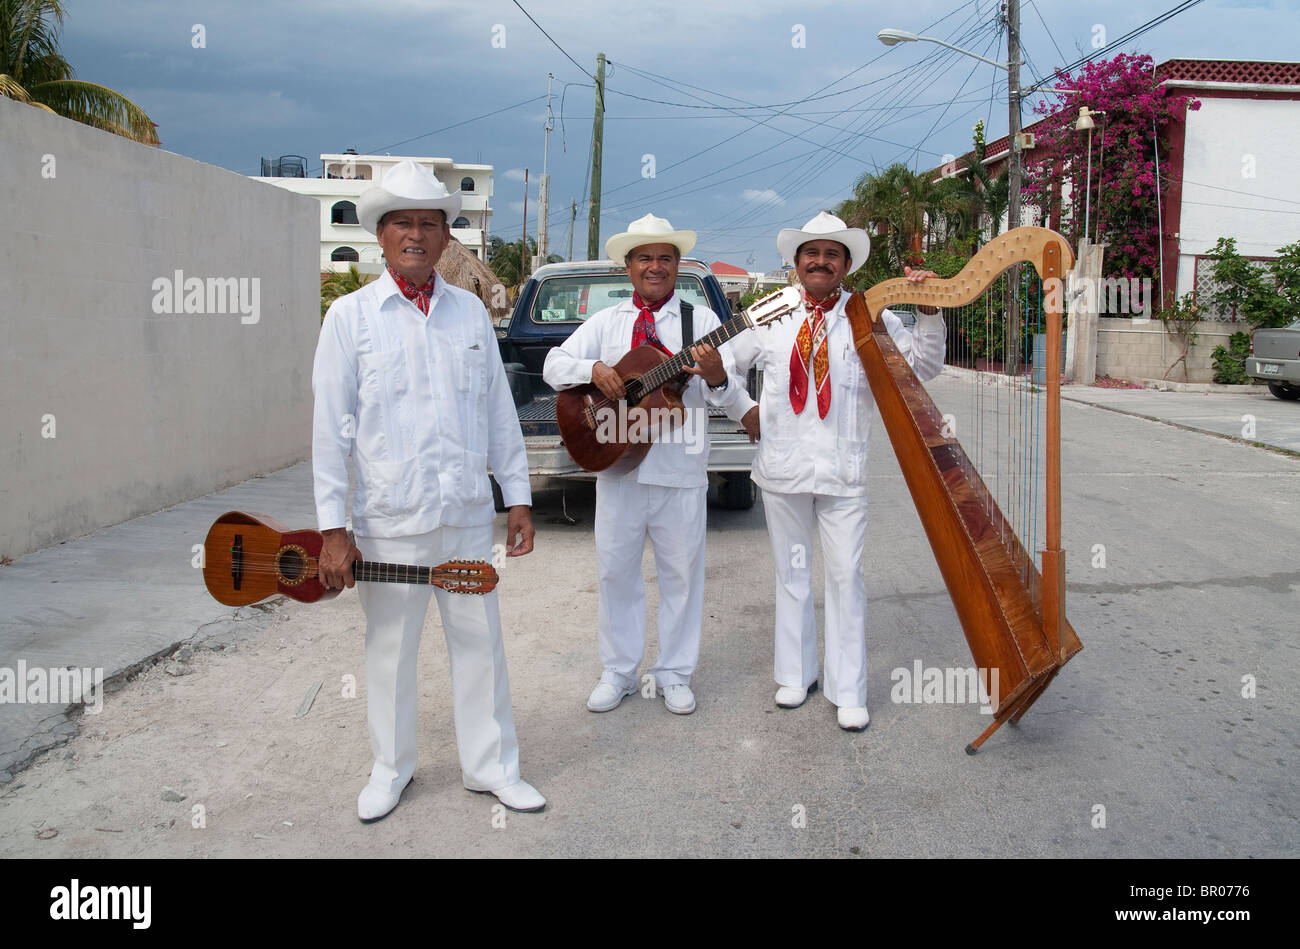 Trio-of-Mexican-musicians-photographed-o